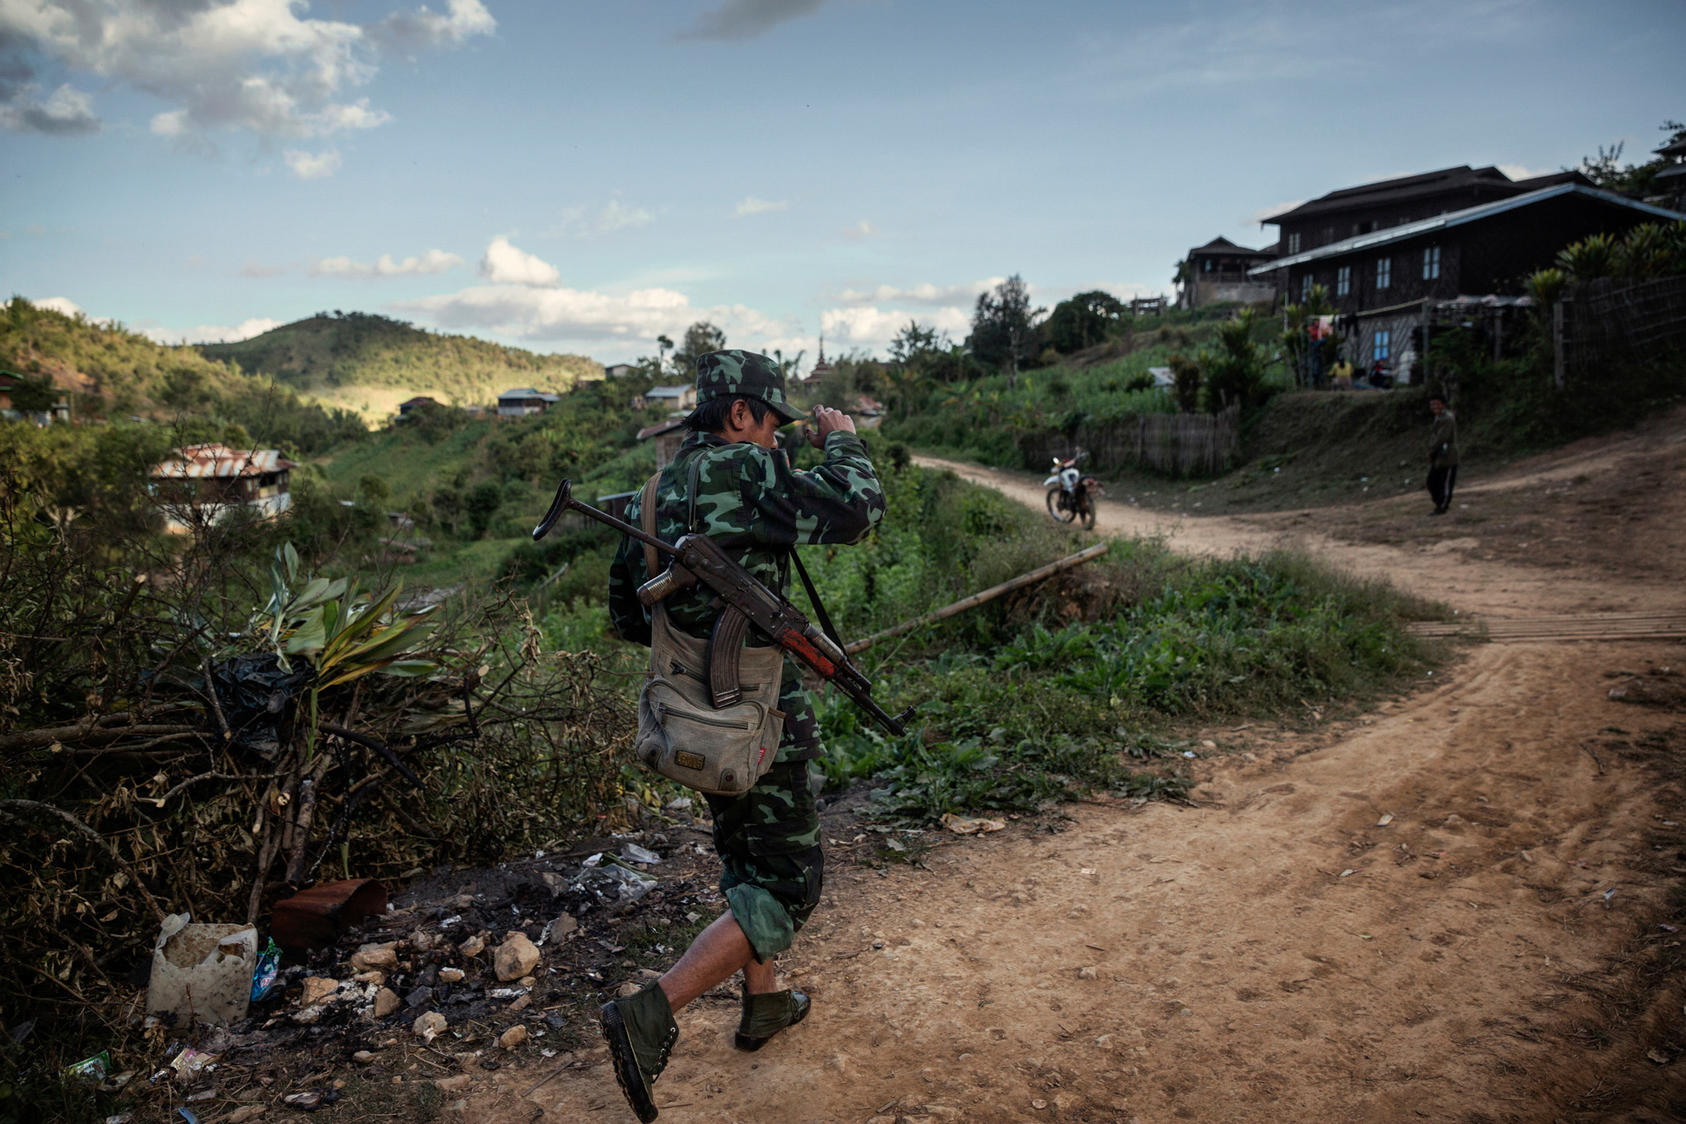 A Shan State Army - South soldier walks through Bang Laem Village, Shan State, Burma. Photo Courtesy of The New York Times/Adam Dean